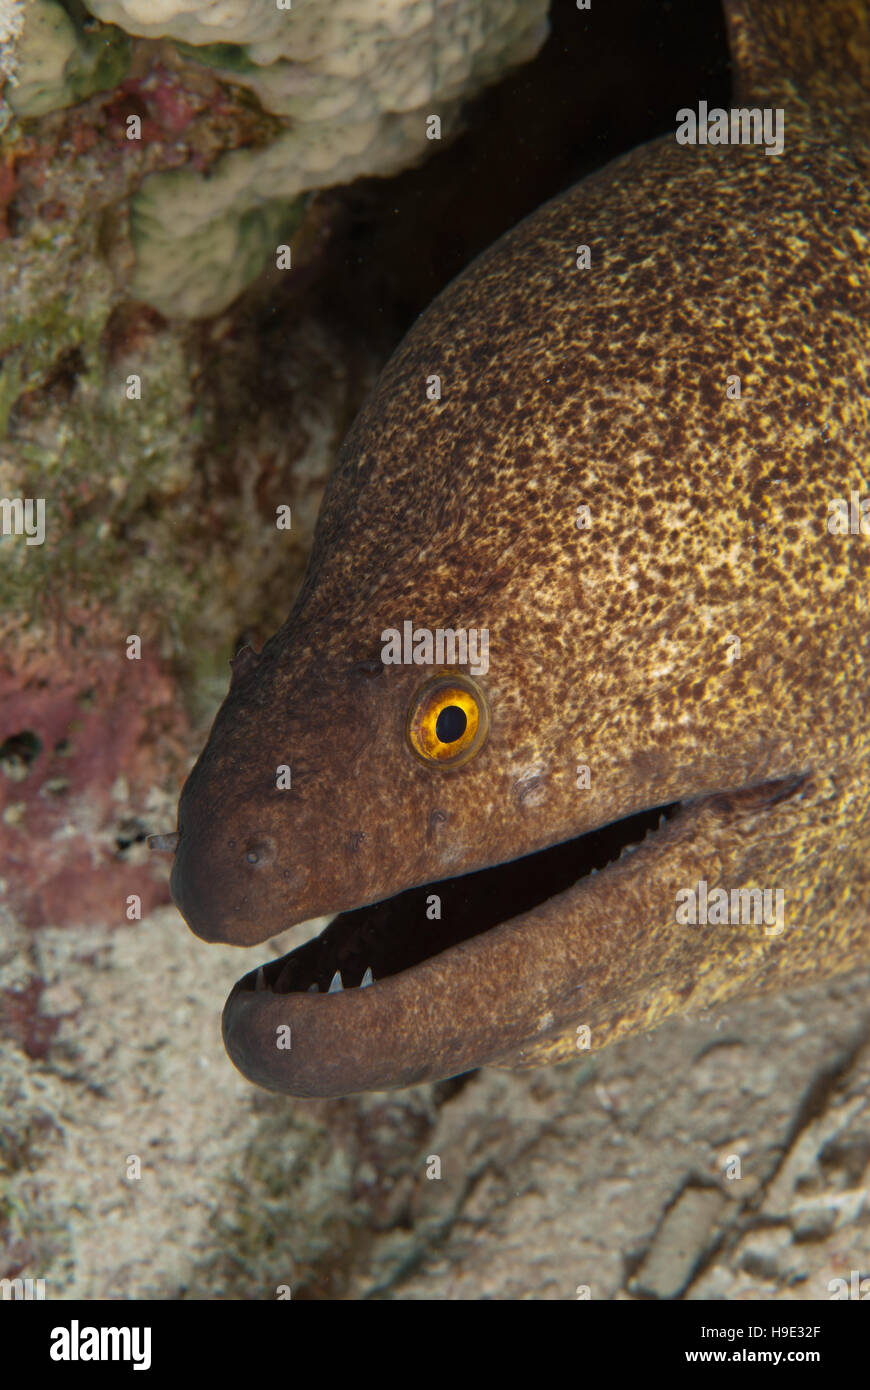 Yellowmargin moray, Gymnothorax flavimarginatus, Muraenidae, Sharm el Sheikh, Red Sea, Egypt - Stock Image